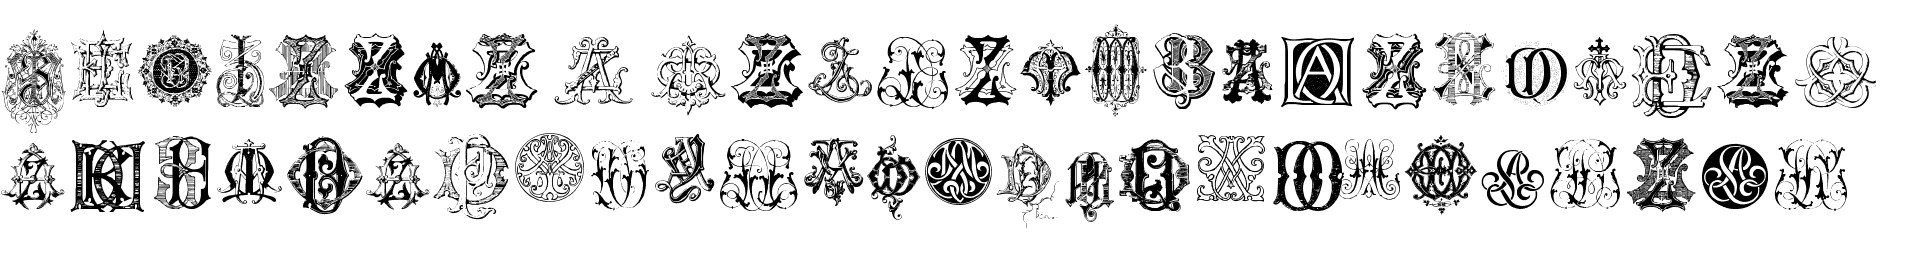 Intellecta Monograms Random Samples Eight